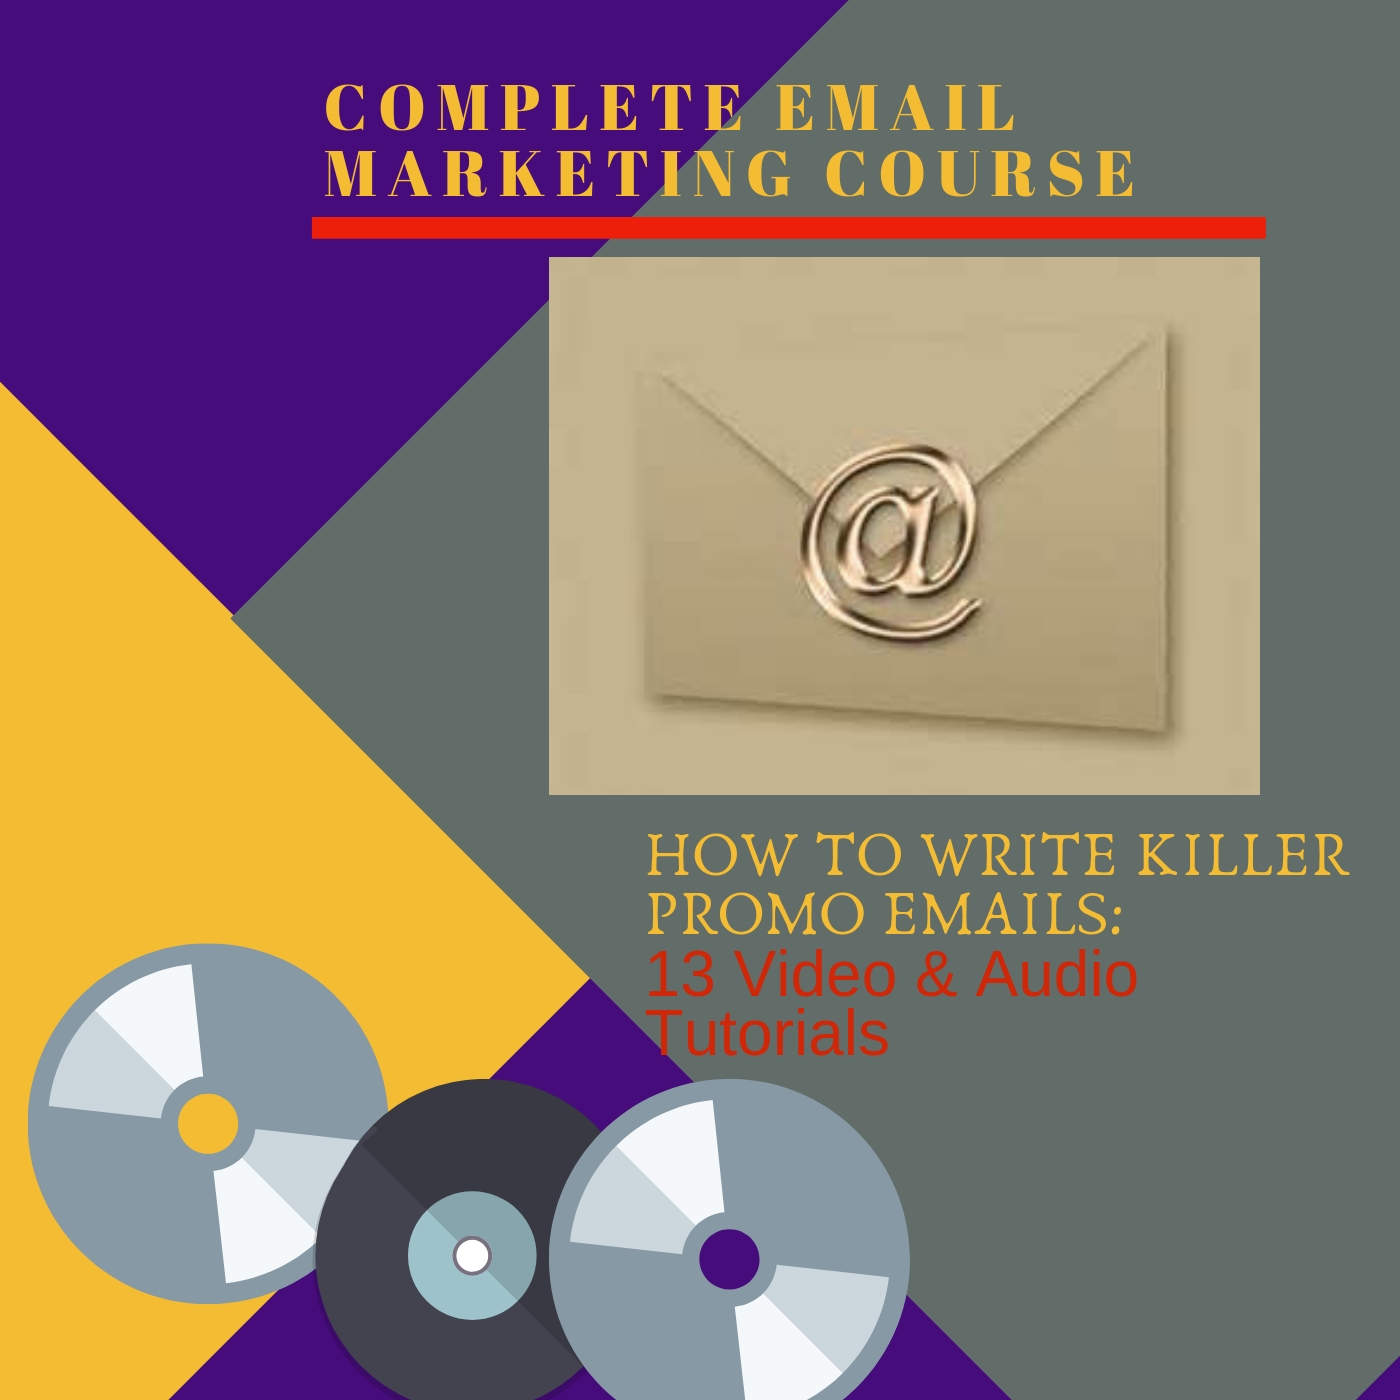 I WILL PROVIDE YOU A COMPLETE EMAIL MARKETING COURSE